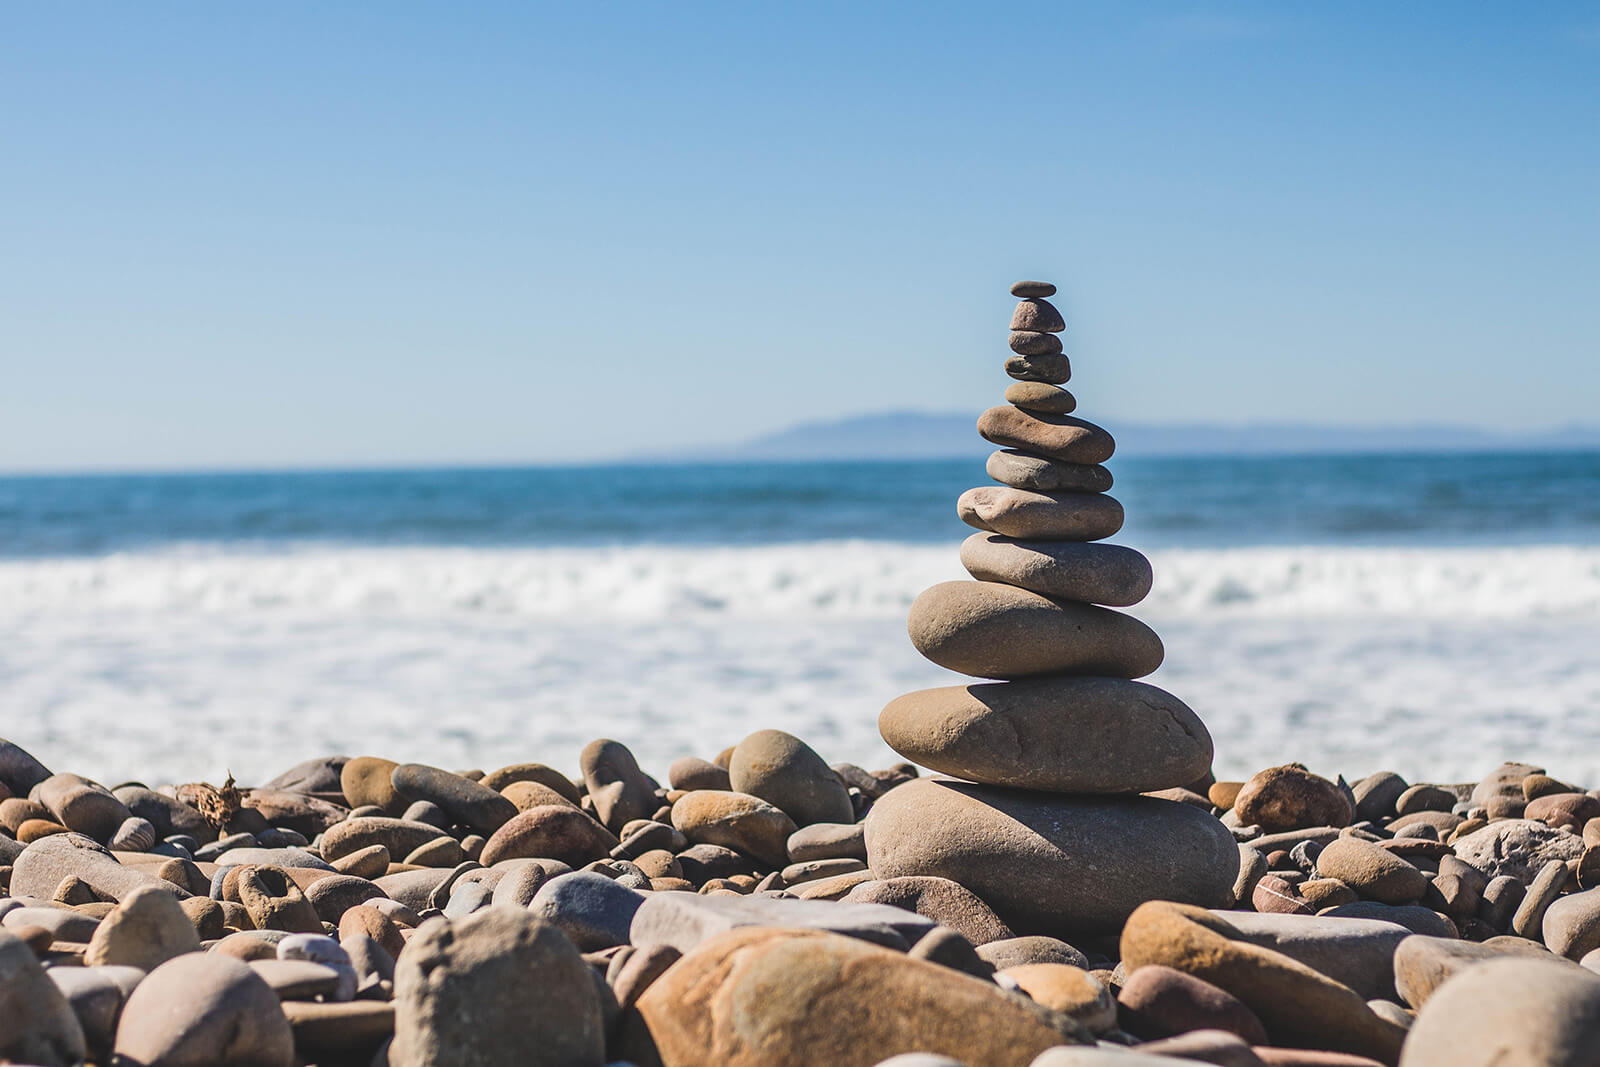 rocks stacked on top of each other along a beach